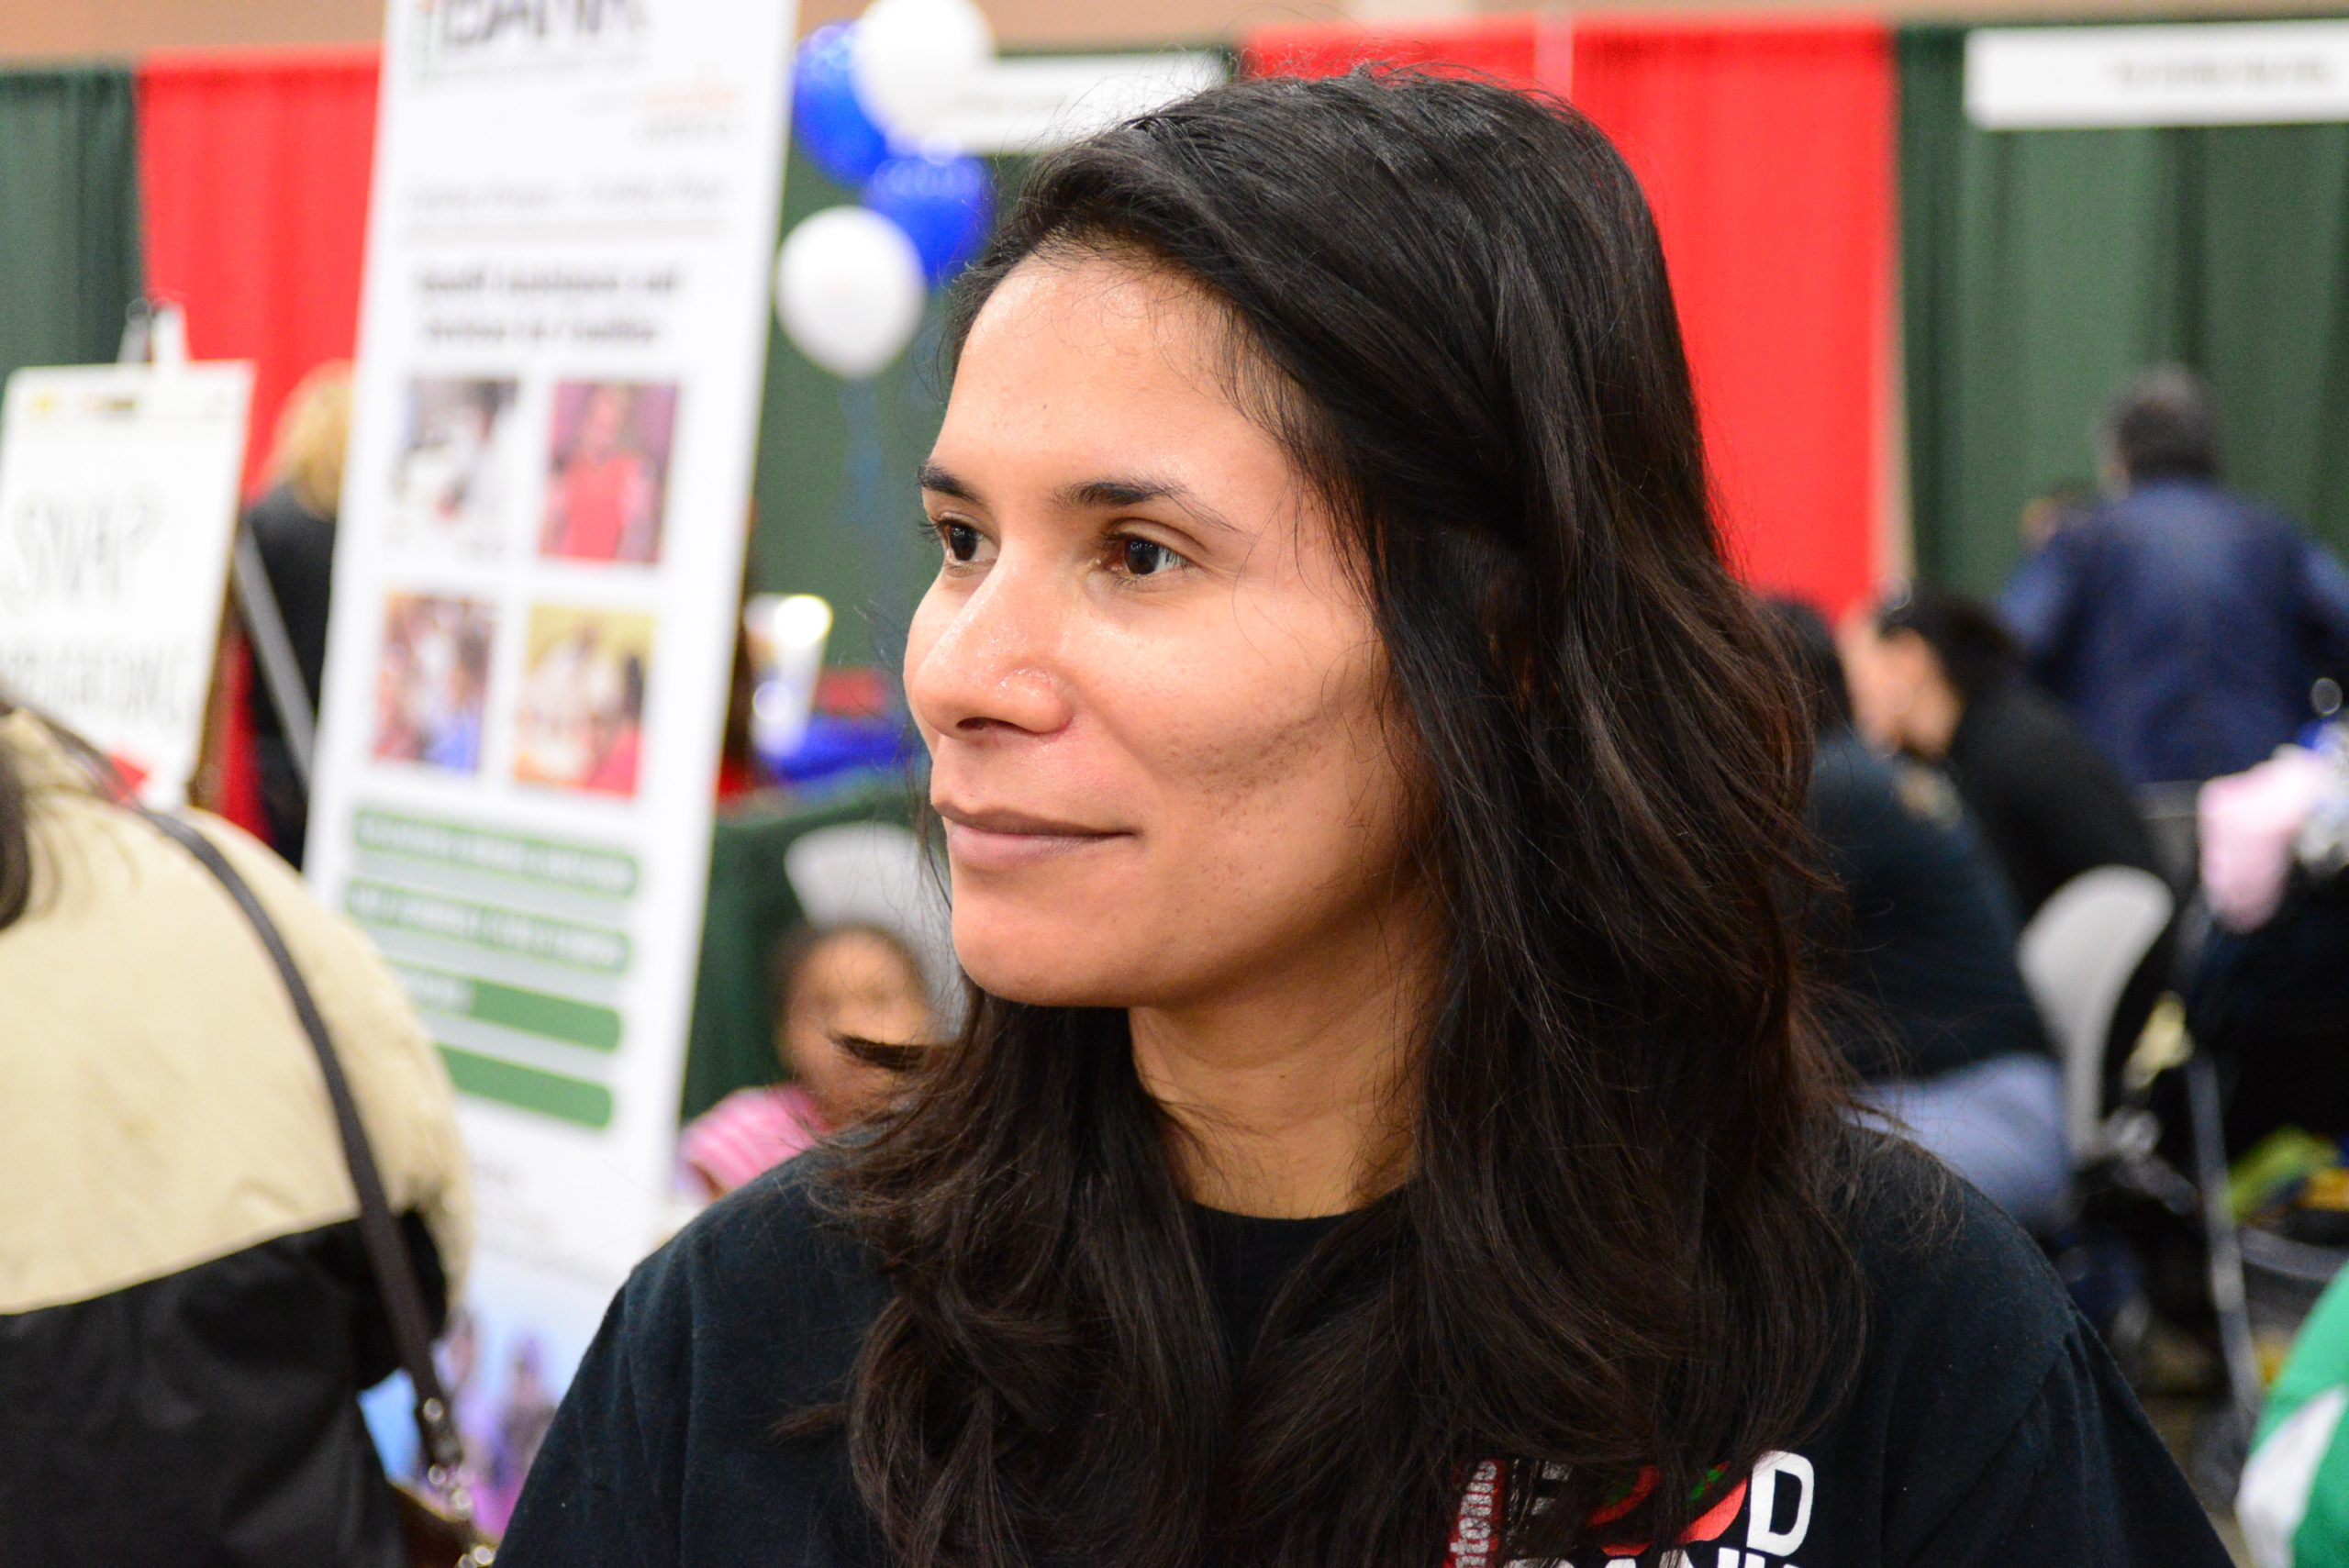 Yesenia Bazan of the San Antonio Food Bank discusses their goals for the Feast of Sharing. Photo by Page Graham.